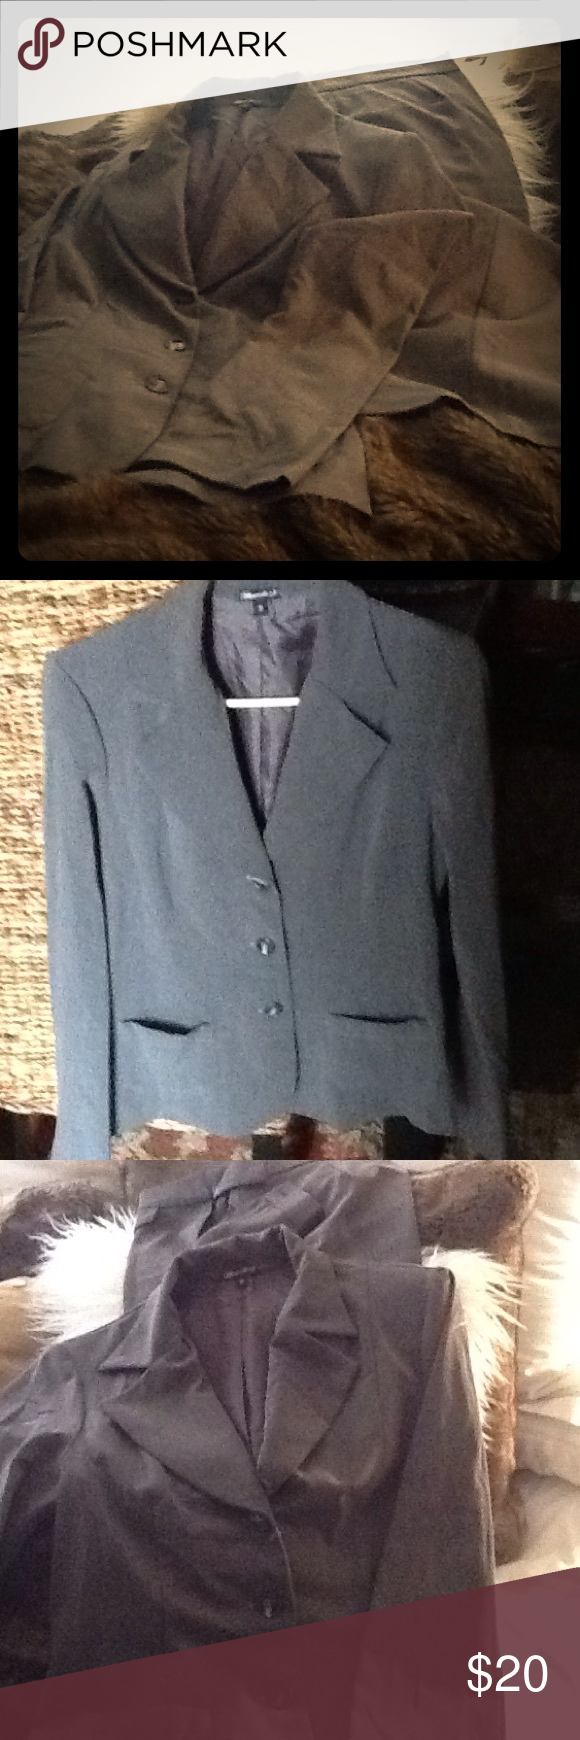 Grey Pant Suit Size 9 Machine Wash Cold Water, Tumble Dry Low,Polyester,Rayon,Spandex,Color Grey,Gently Used Jackets & Coats Blazers